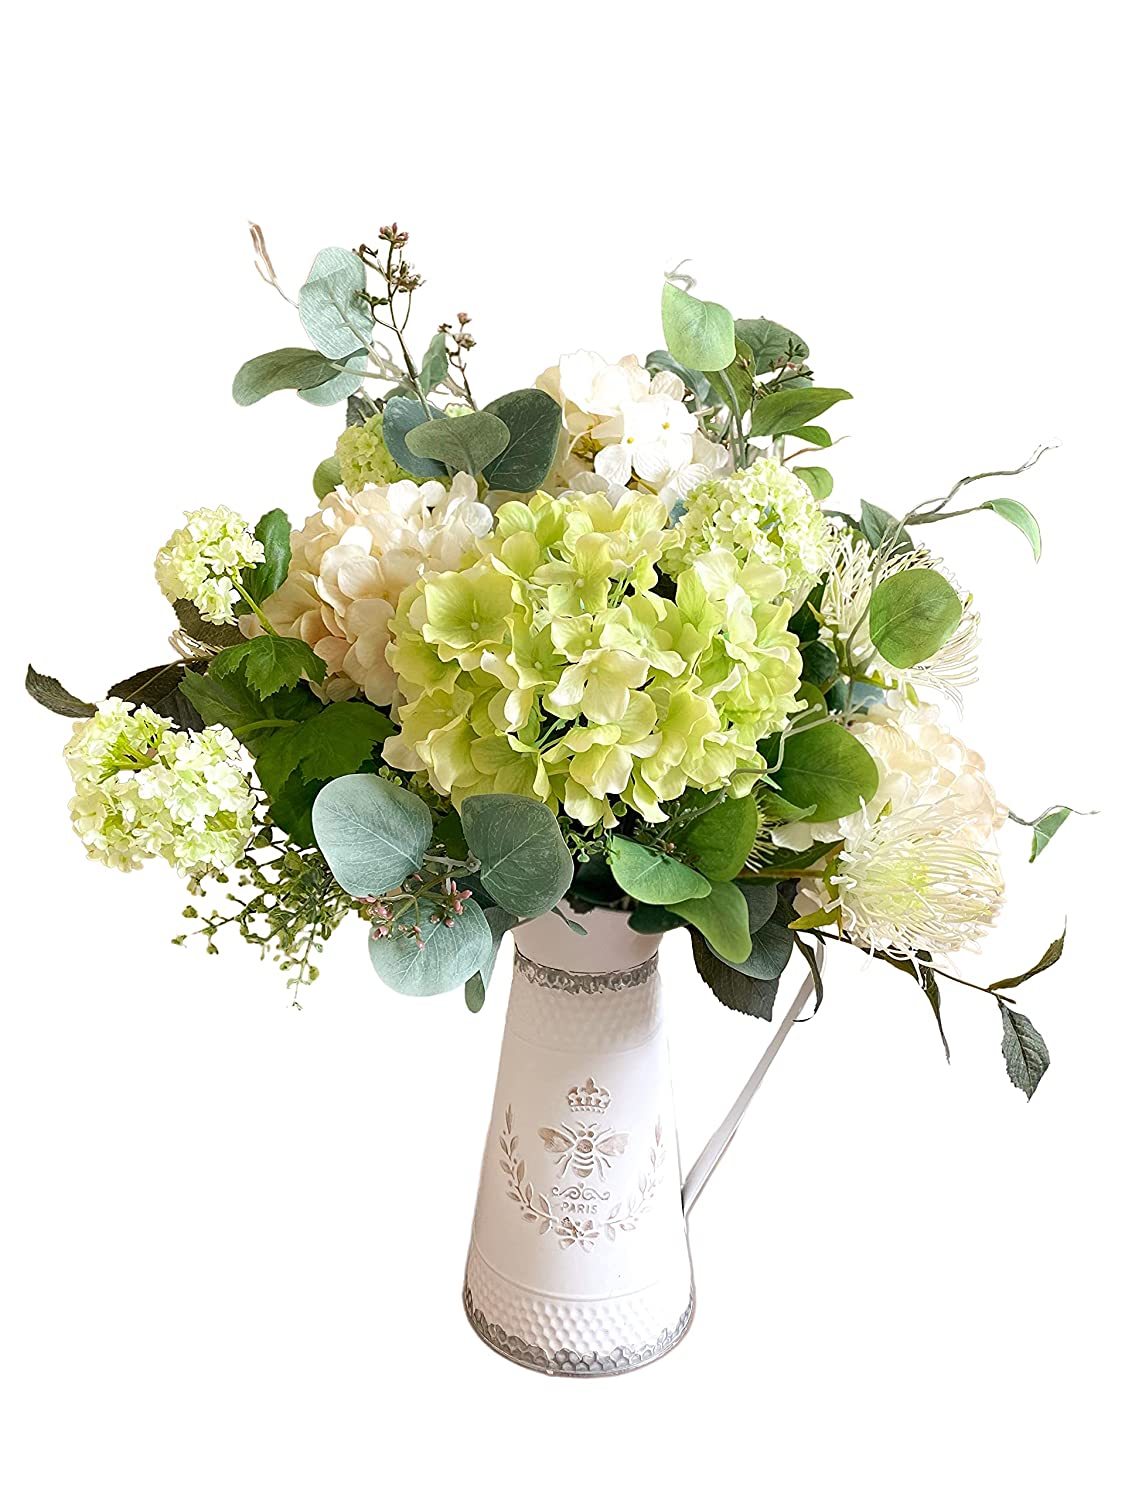 Green Store and Ivory Hydrangea Arrangement in Pitcher Bee distressed Safety and trust